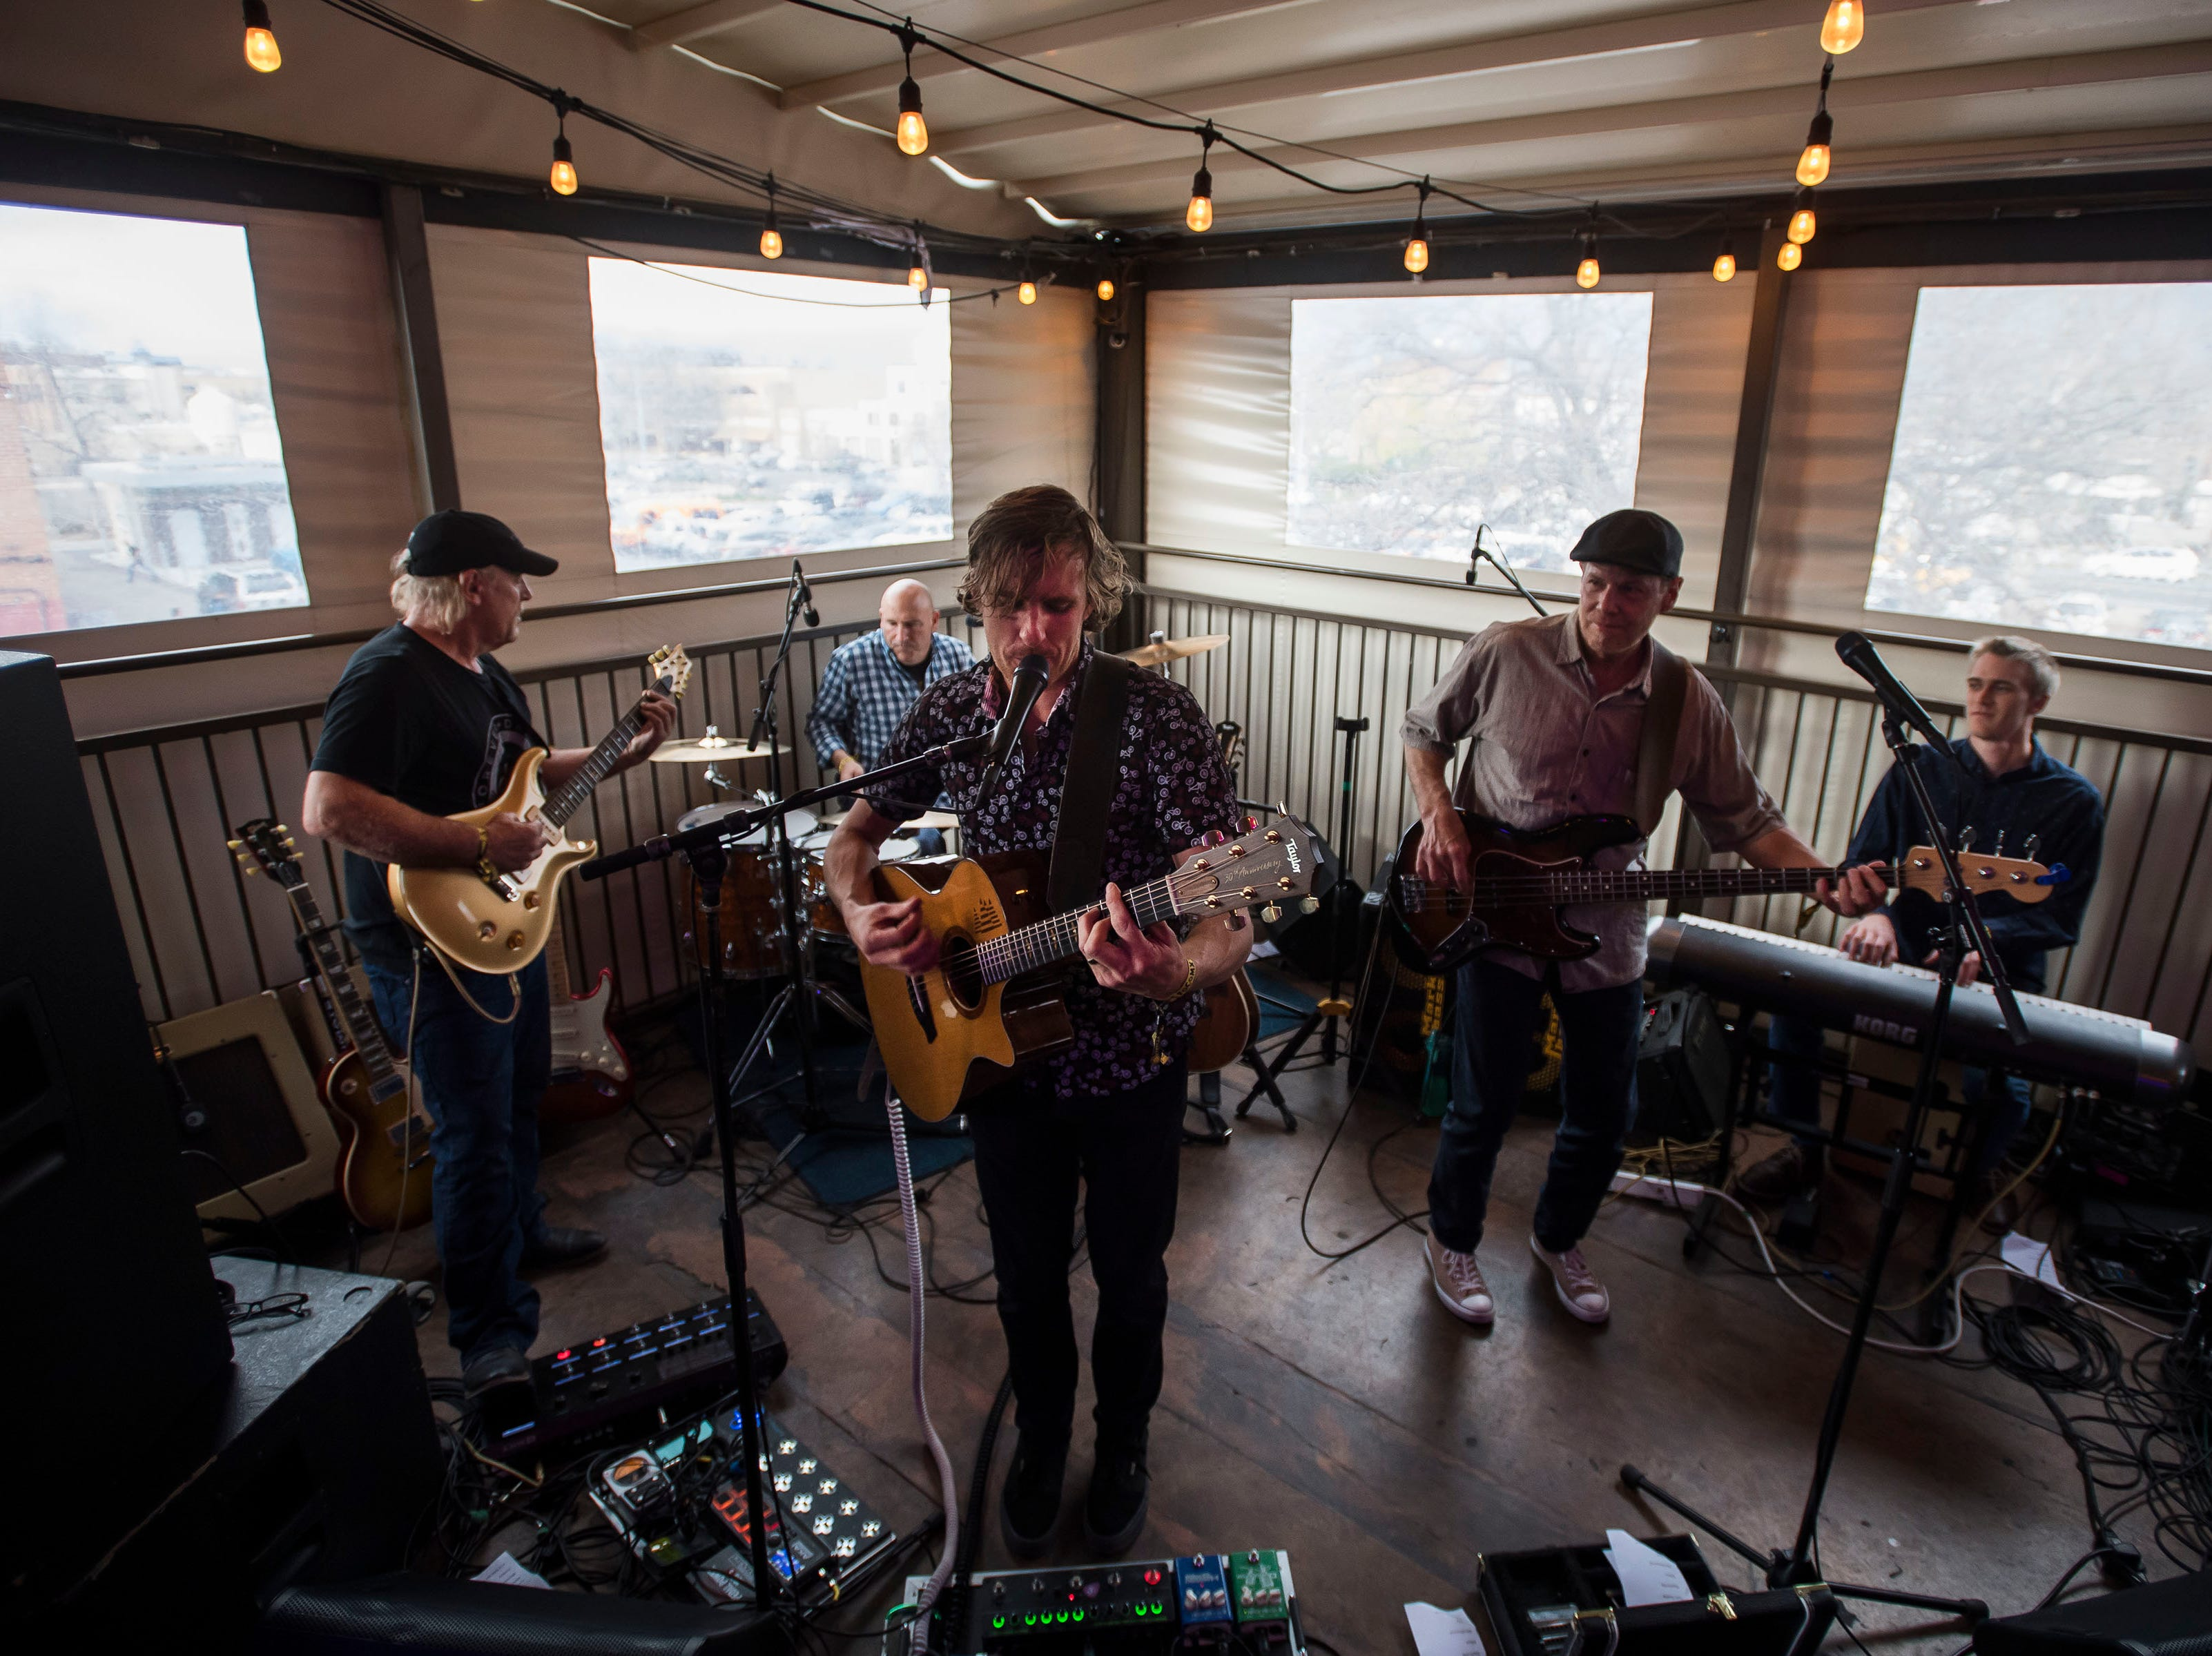 The 14ers play Tony's Bar & Rooftop during the FoCoMX XI music festival on Friday, April 26, 2019, in Fort Collins, Colo.